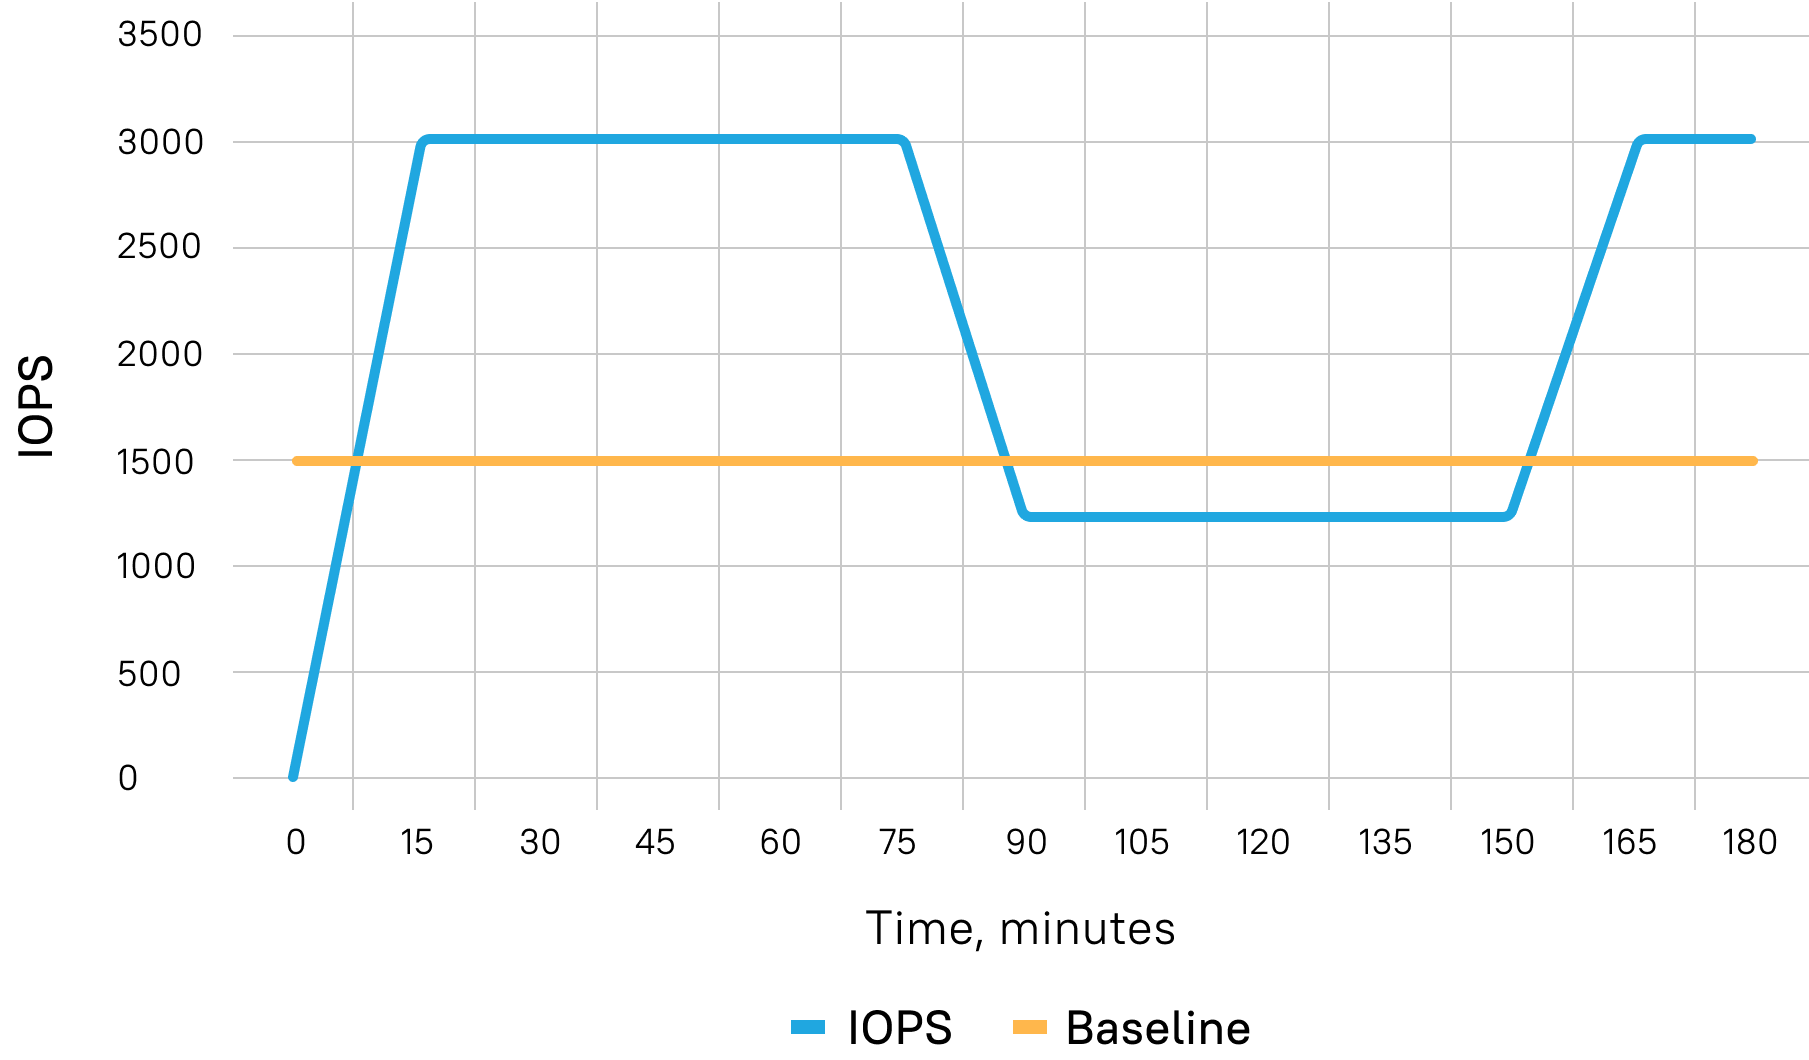 In AWS, each of your hard disks gets a credit of 5 million IOPS for ca. 30 minutes. It allows you to use more IOPS than you had paid for, and all applications start smoothly. After the credit has been used, the IOPS are set back to the previous level